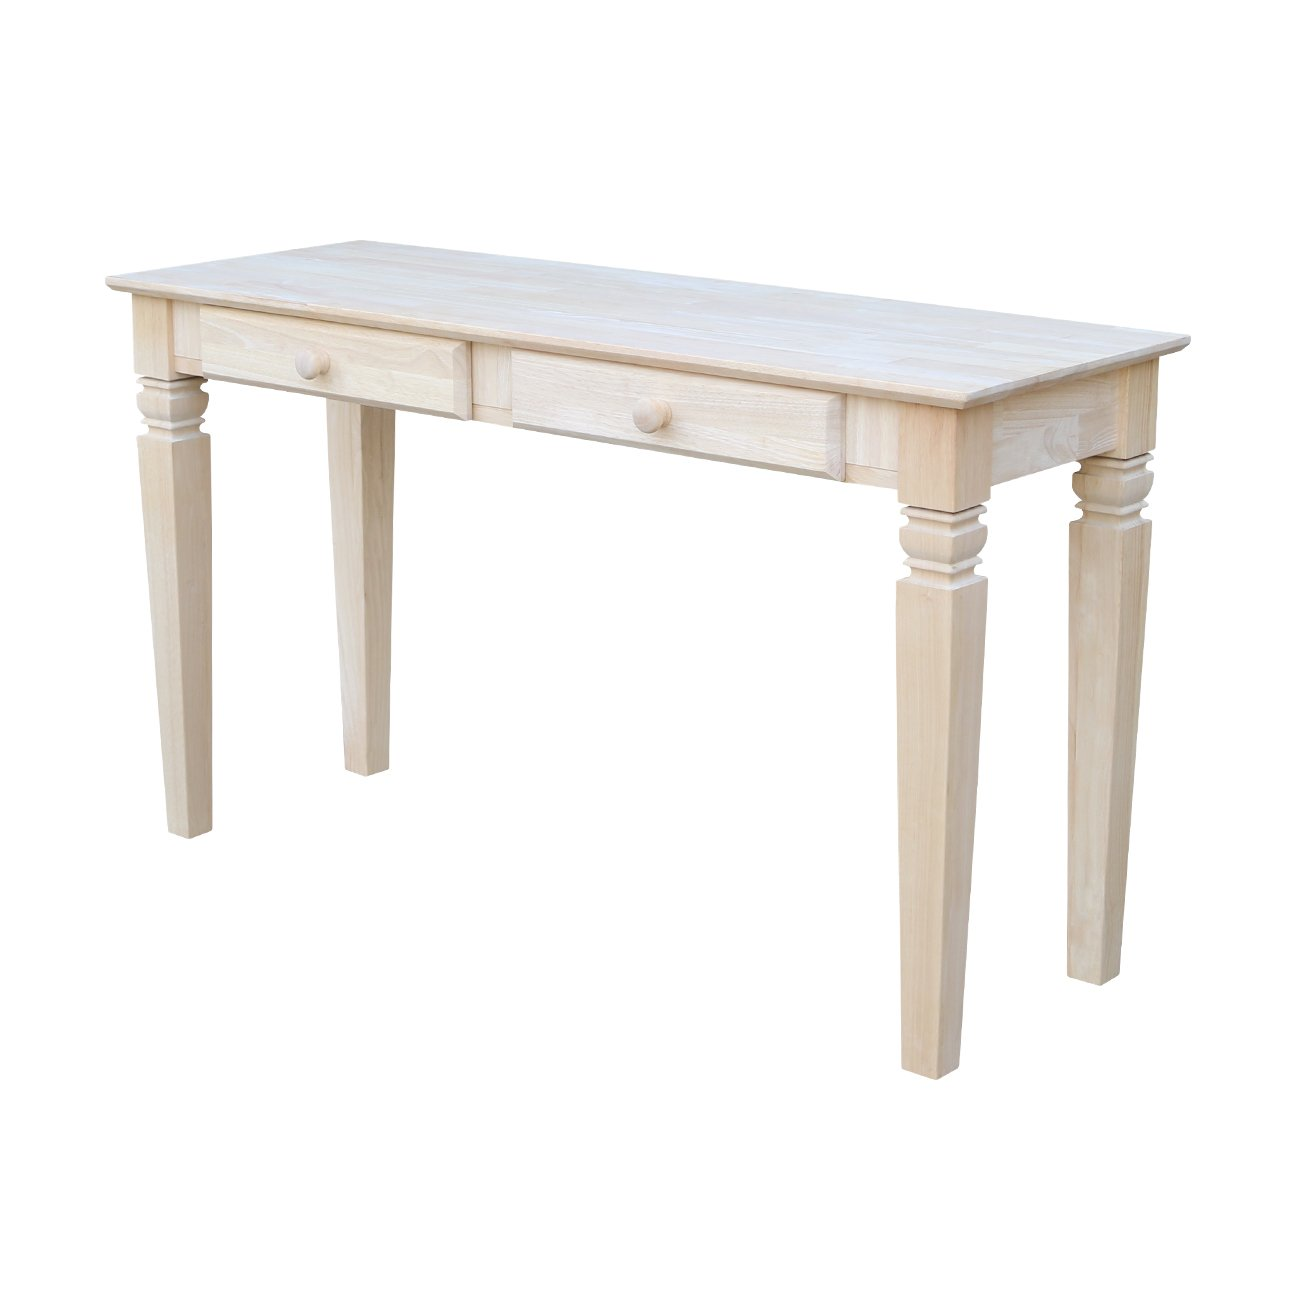 International Concepts Java Sofa Table with 2 Drawers, Unfinished